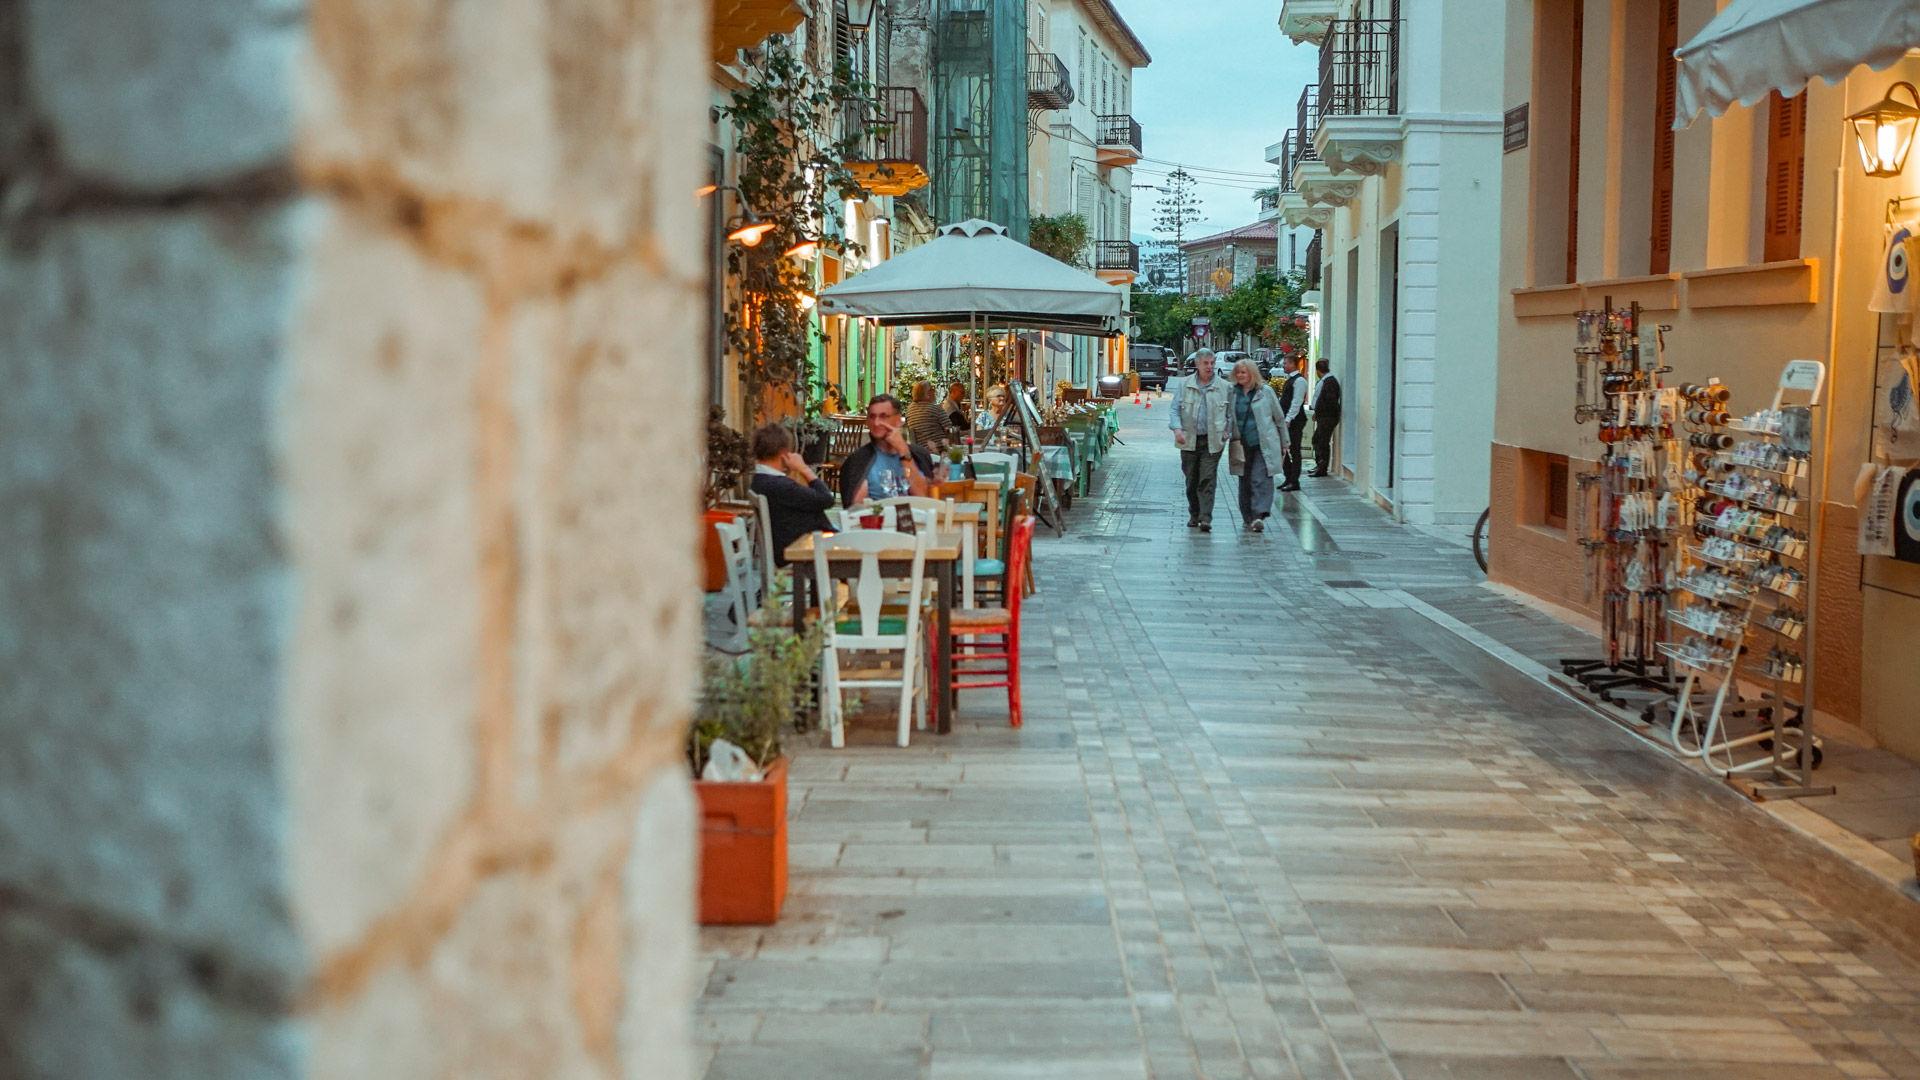 With tavernas serving local dishes with an undeniable finesse, atmospheric monuments and neoclassical mansions, Nafplio has a compelling story to tell